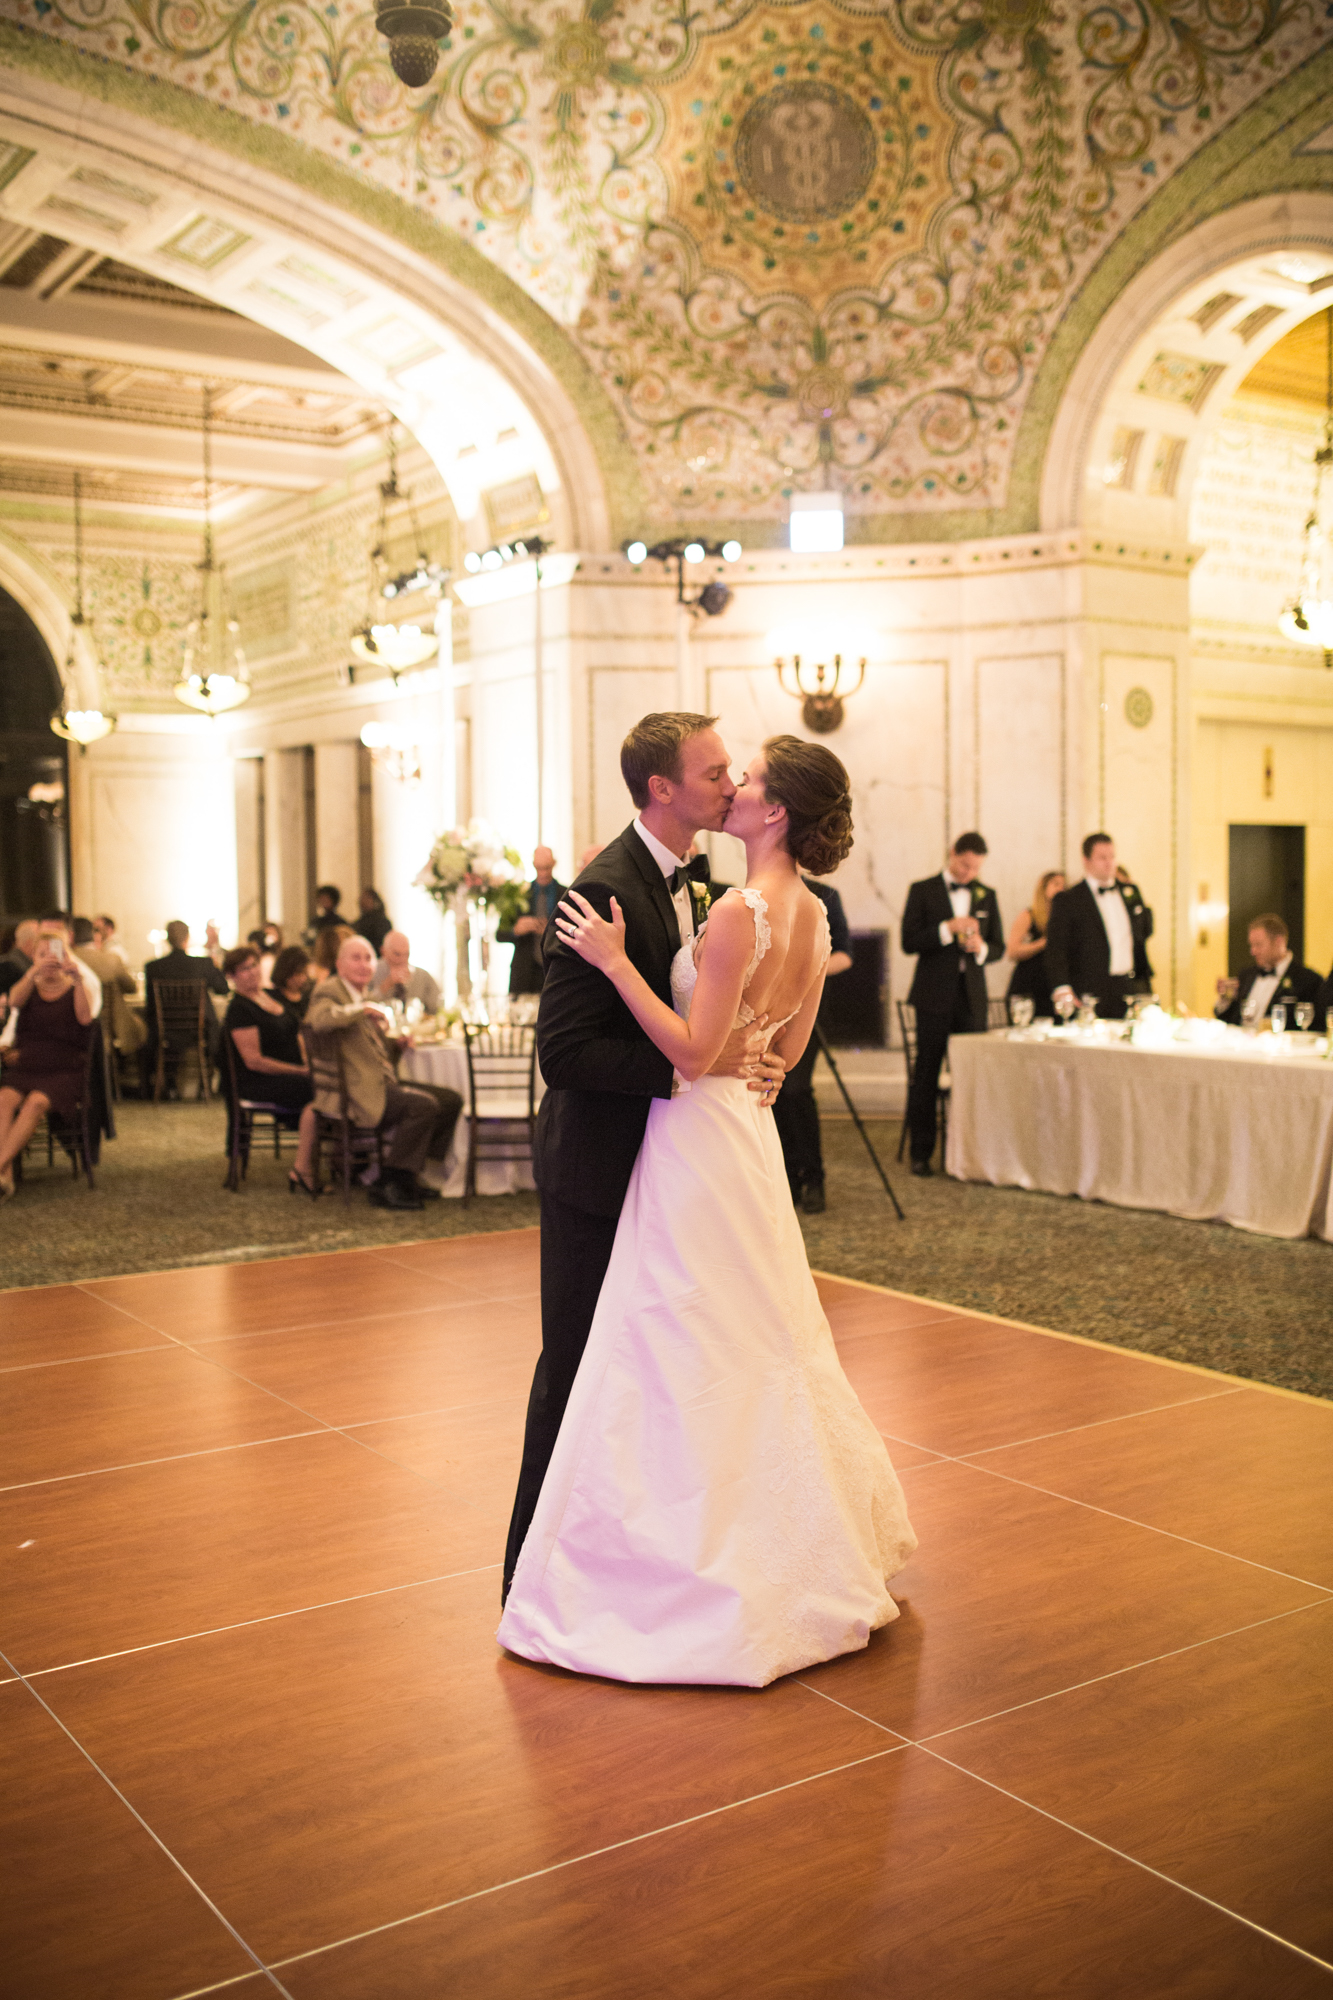 Bride and groom's first dance at Chicago Cultural Center